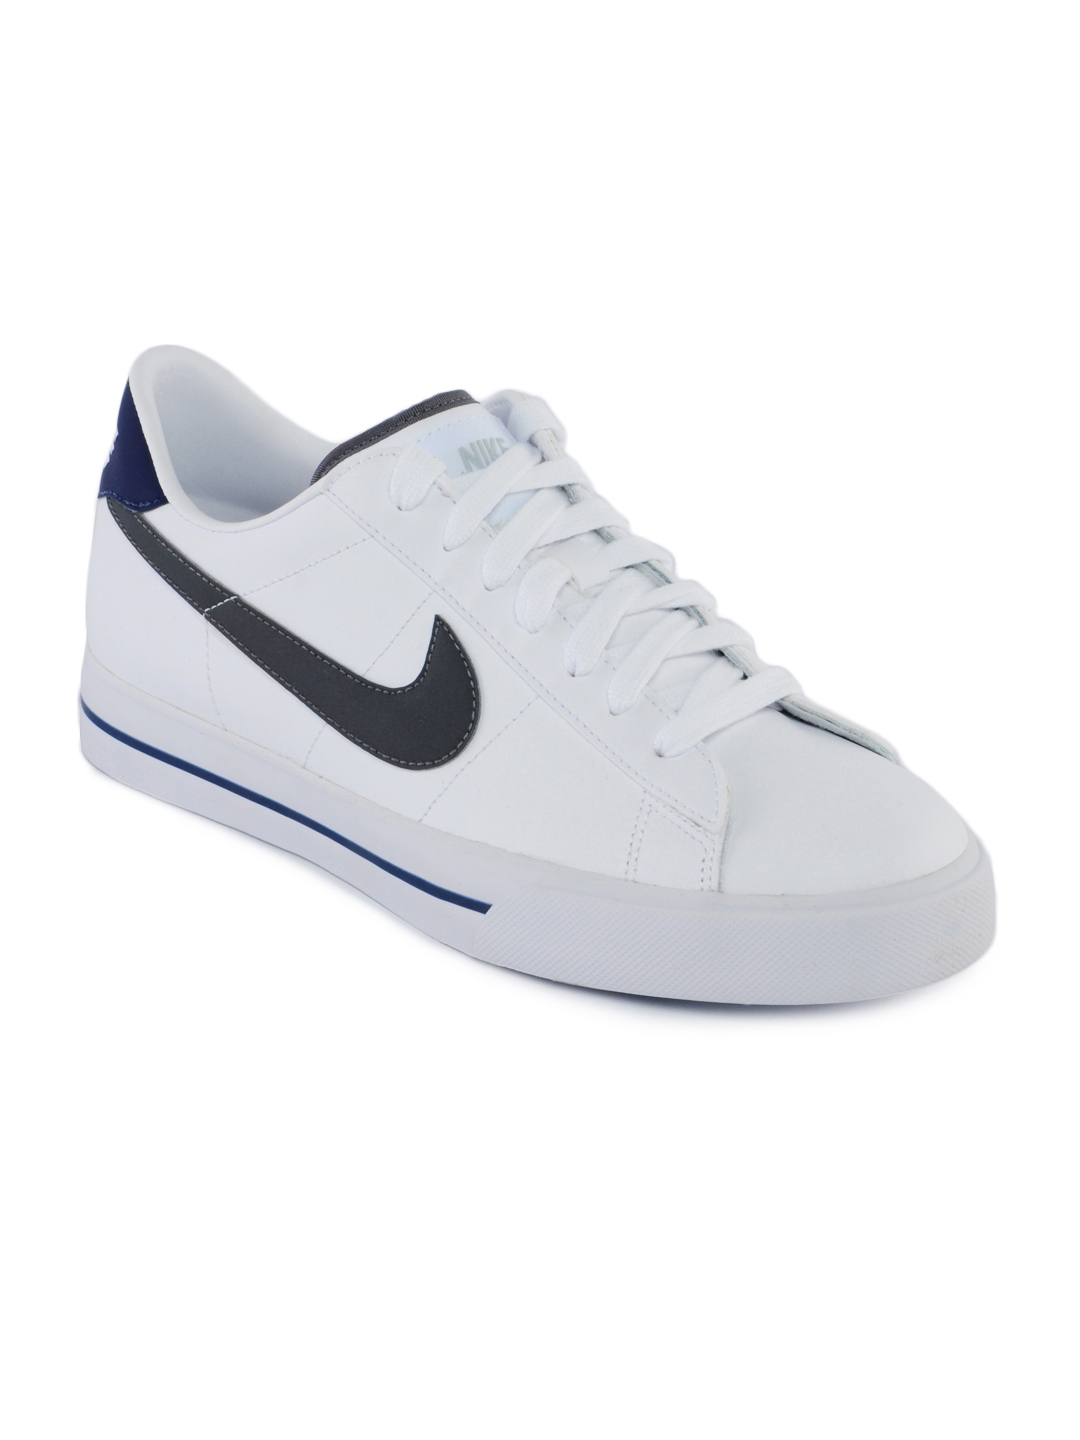 Nike Men Sweet Classic Leather White Shoes